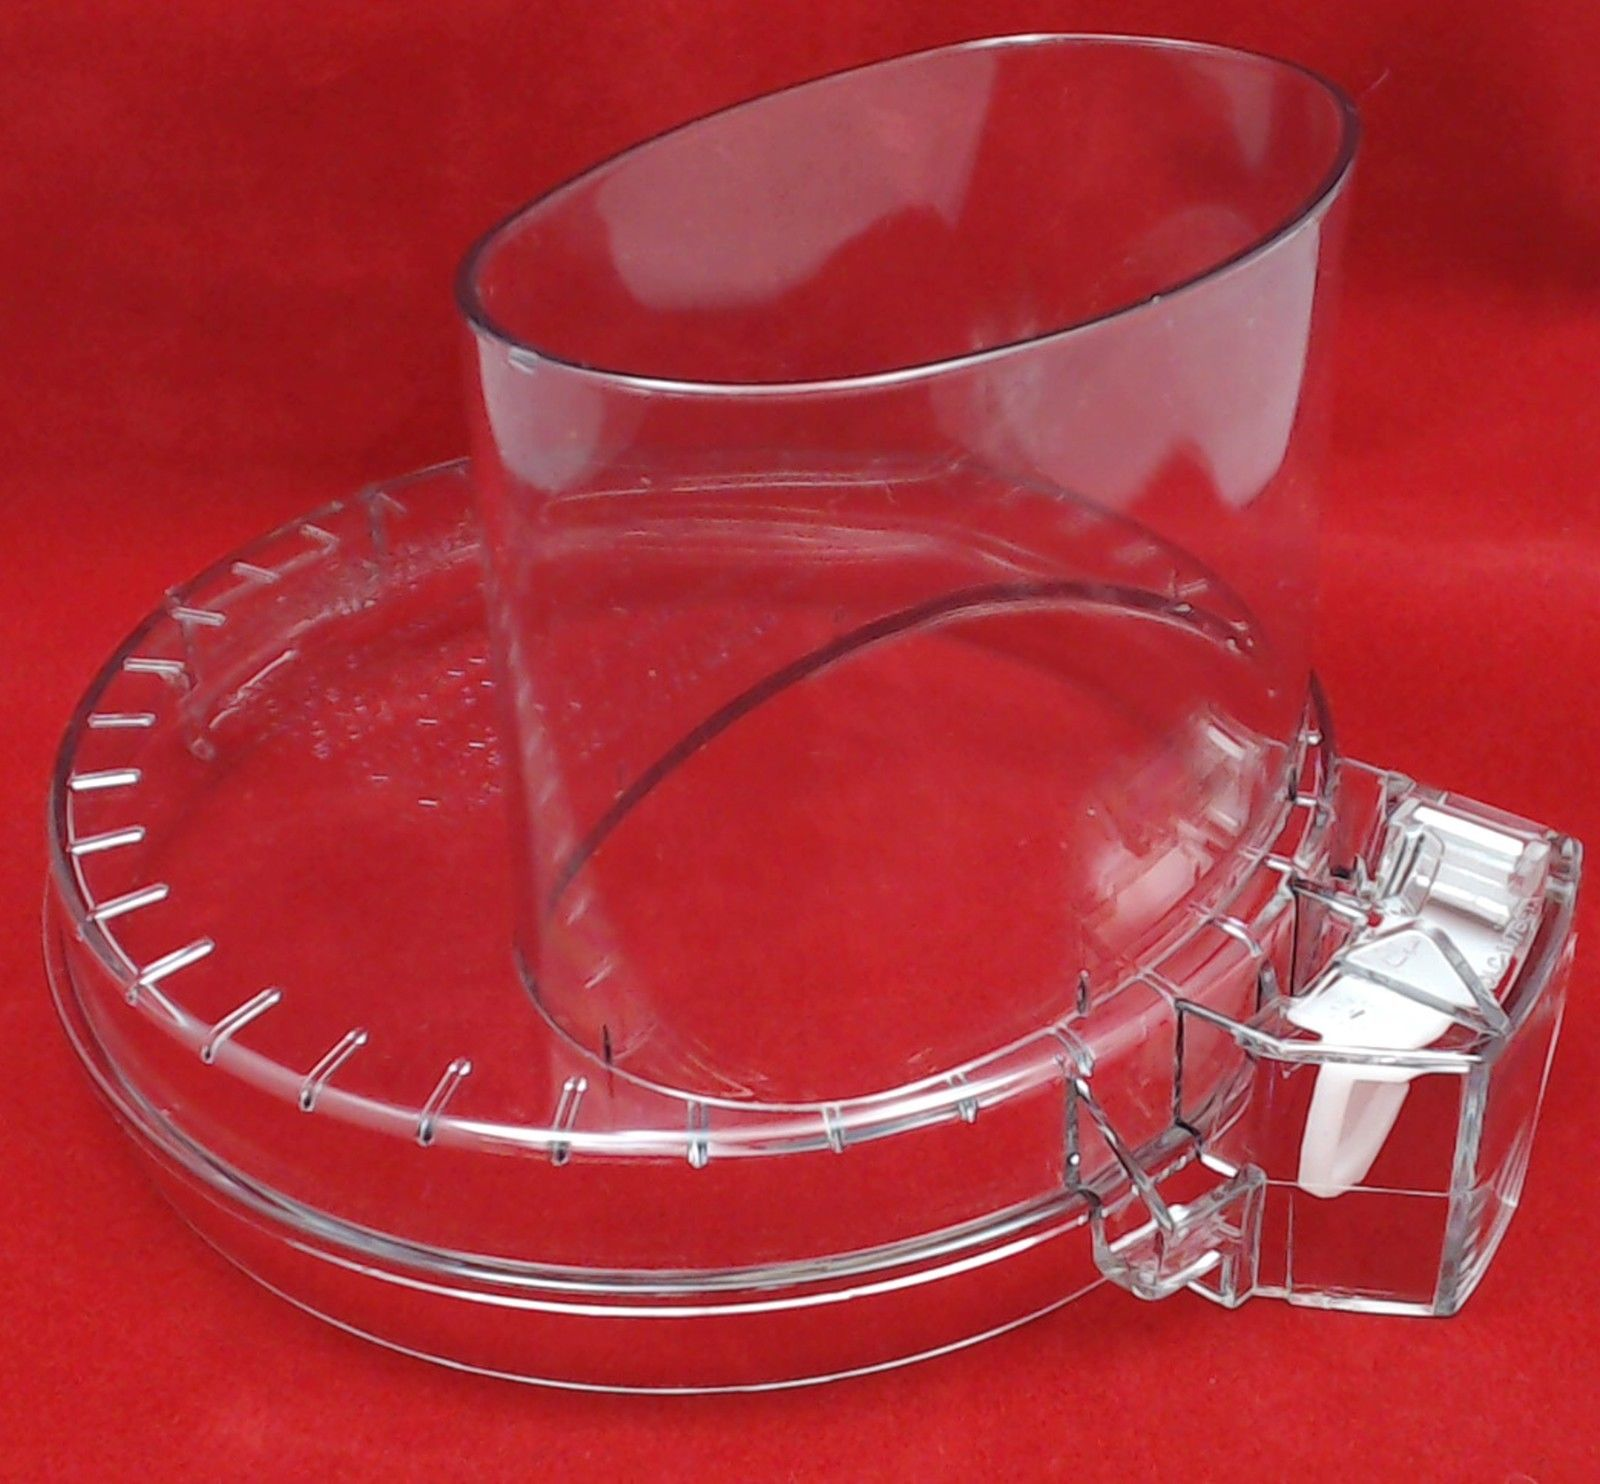 Cuisinart Food Processor Work Bowl Cover for DLC-10 Series, DLC-117BGTX-1